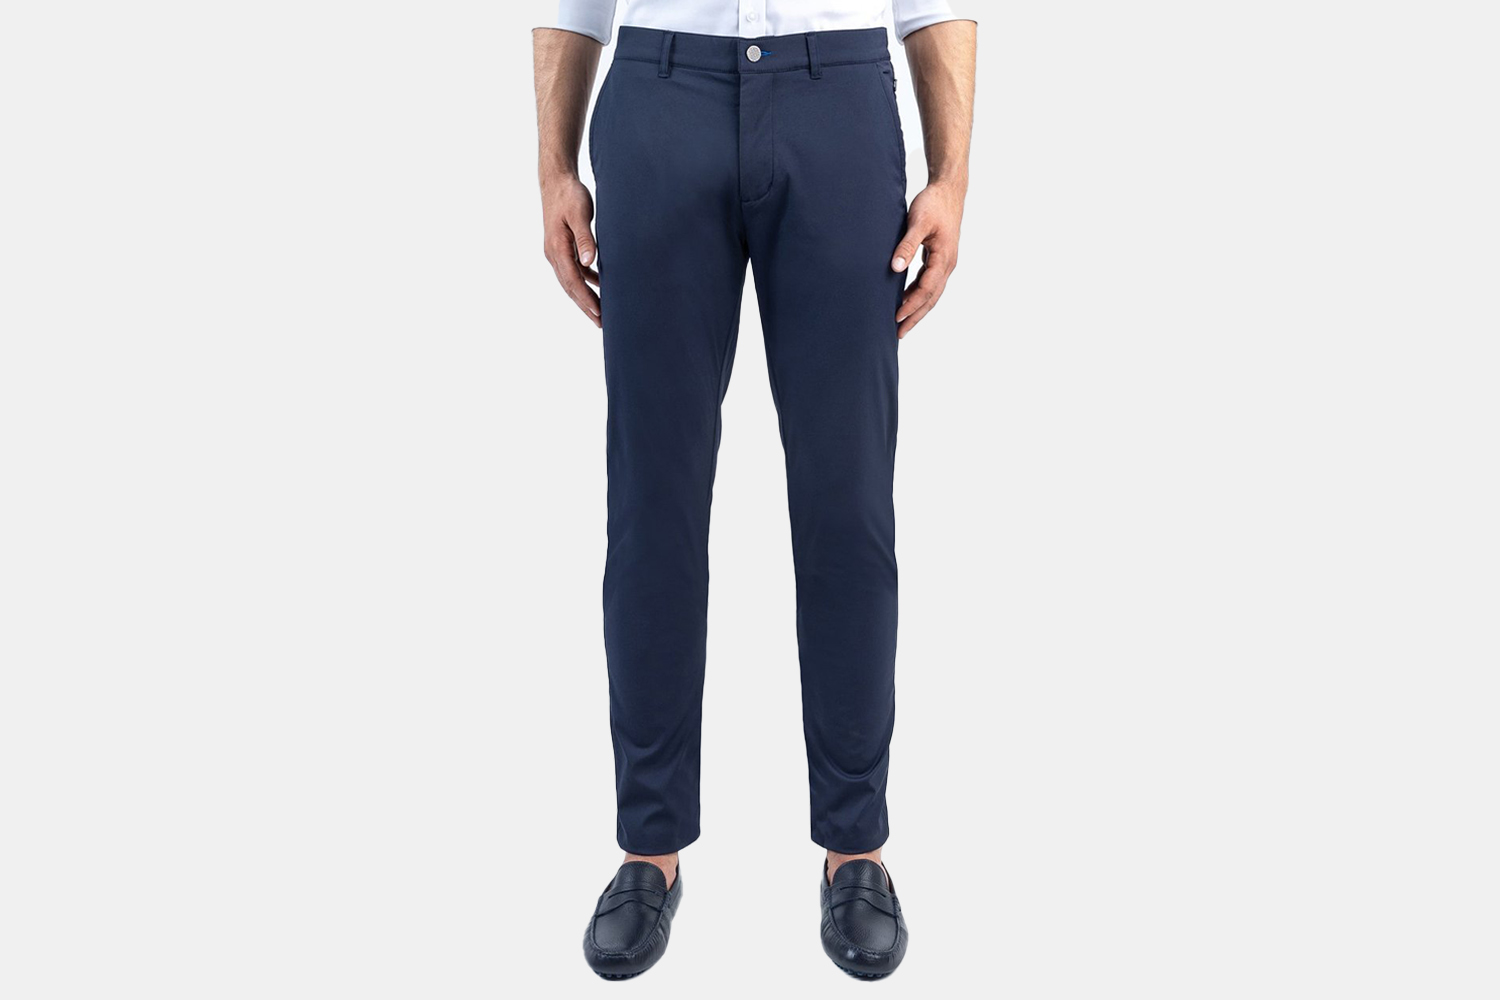 a pair of navy pants on a model.